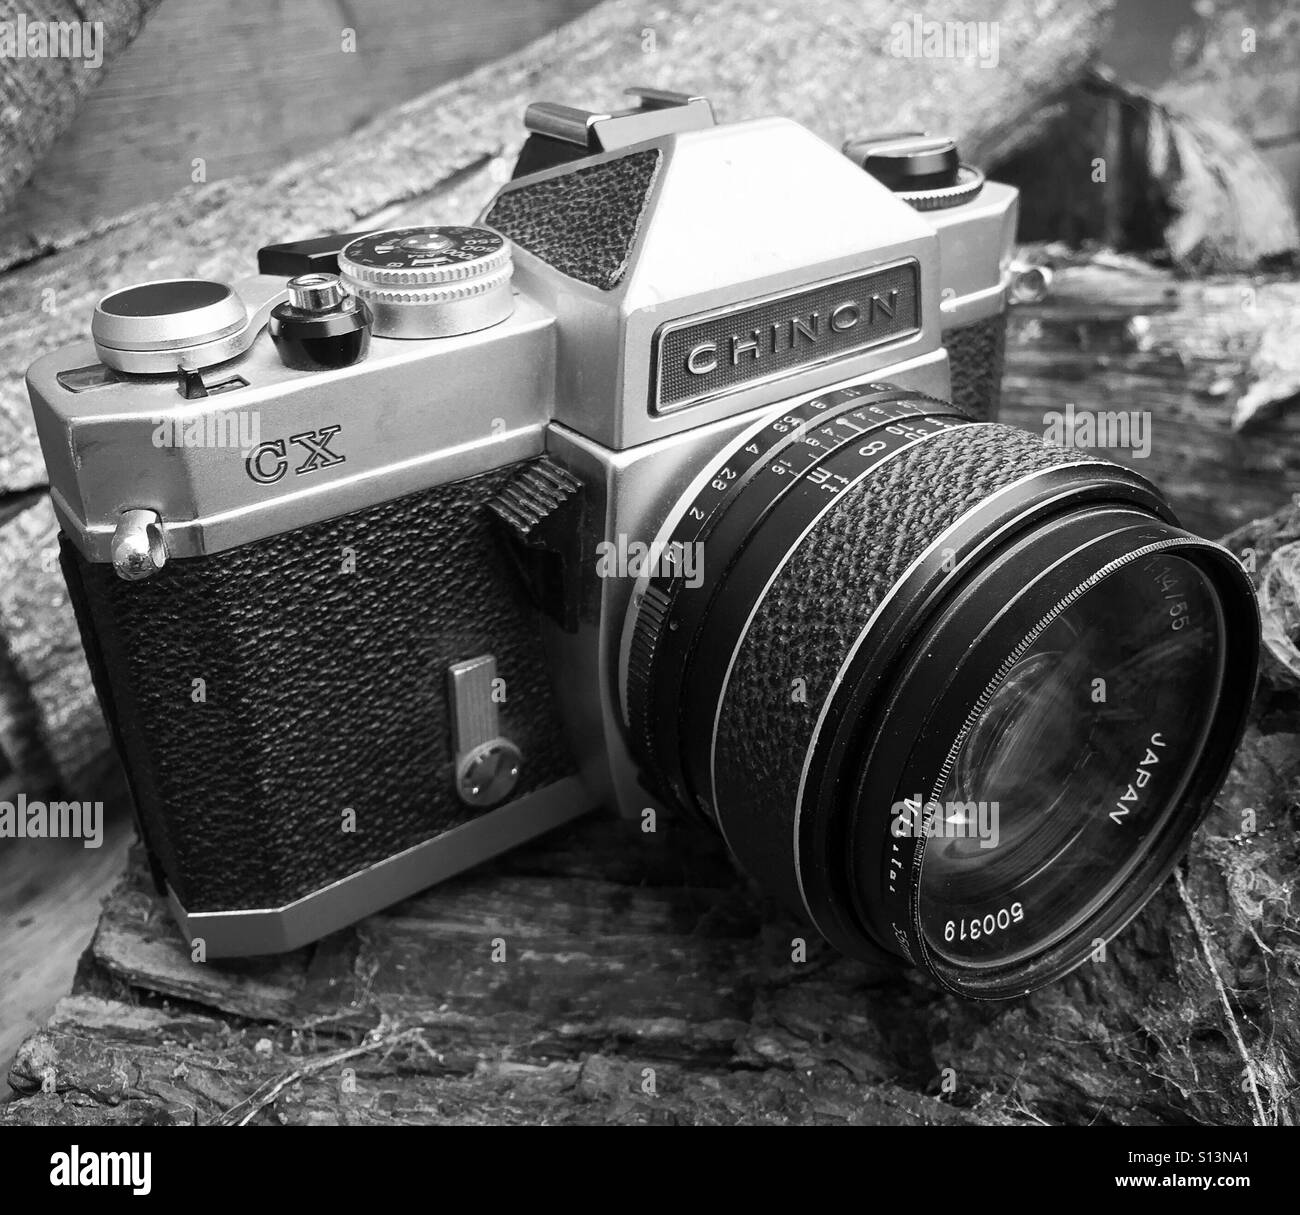 1970s manual film camera, analogue photography - Stock Image